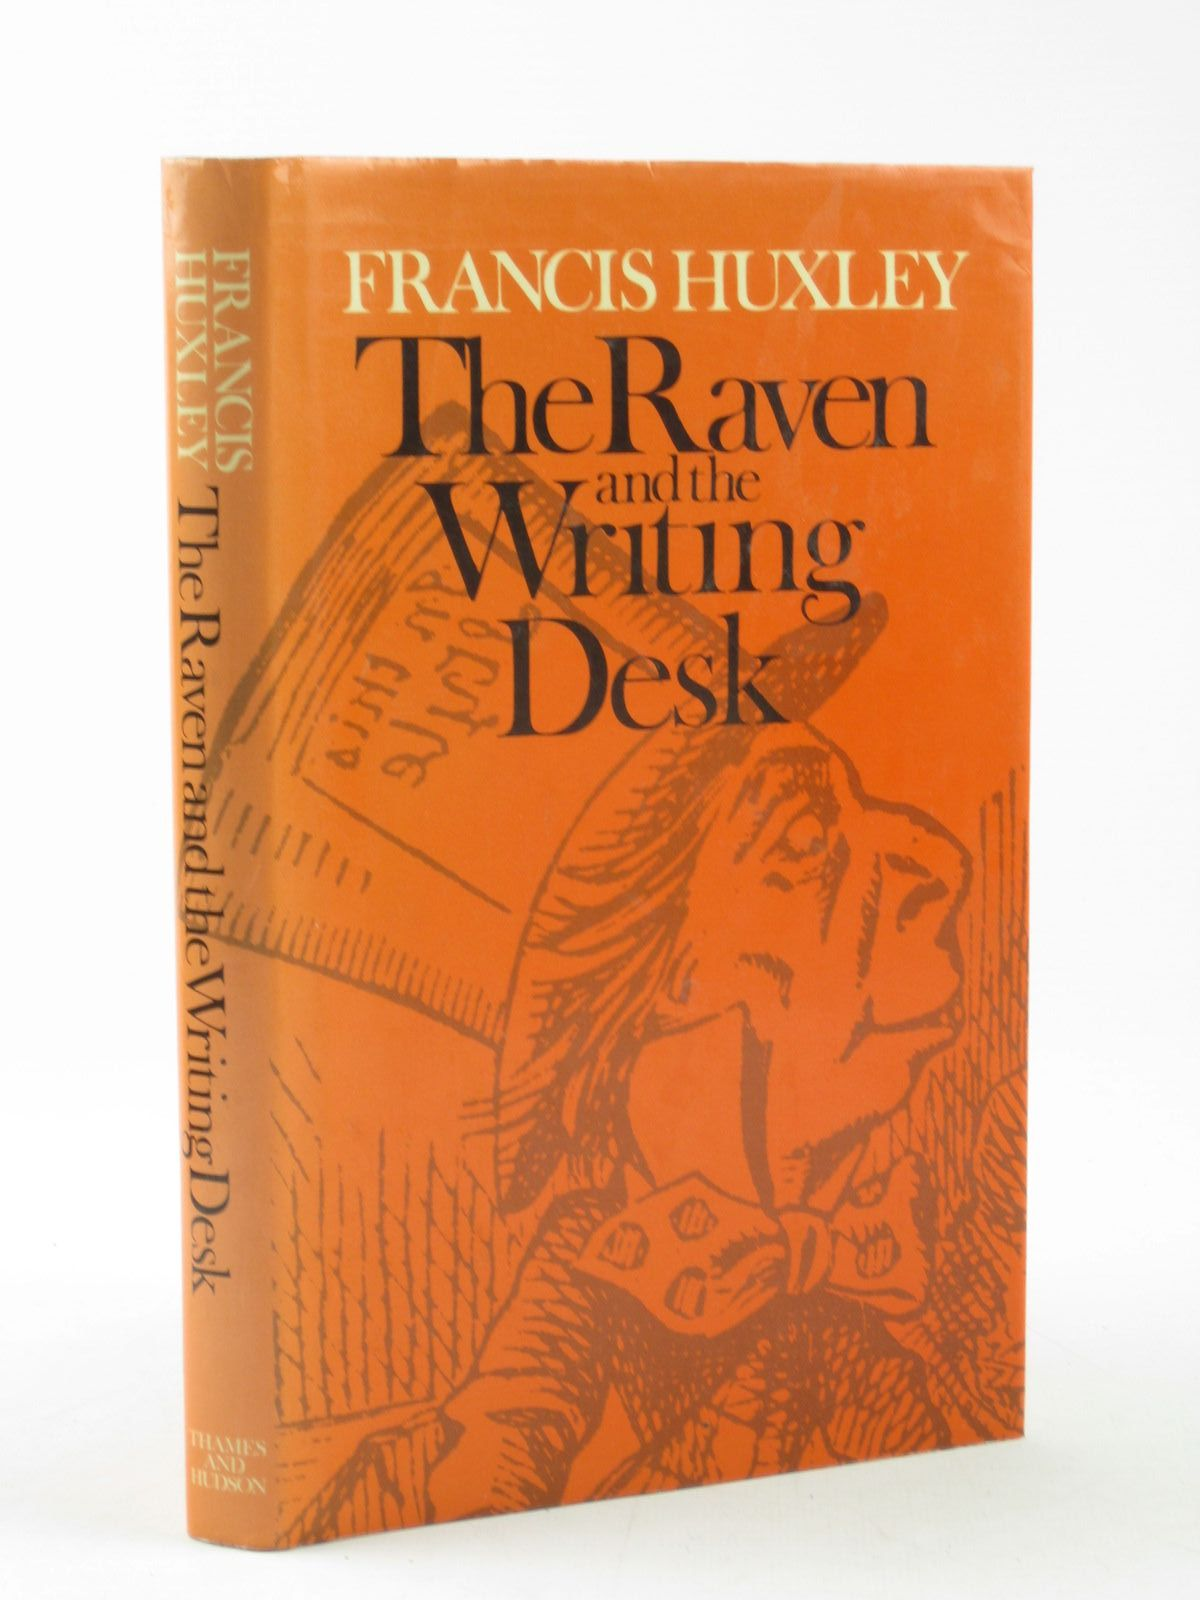 Photo of THE RAVEN AND THE WRITING DESK written by Huxley, Francis published by Thames and Hudson (STOCK CODE: 1311722)  for sale by Stella & Rose's Books